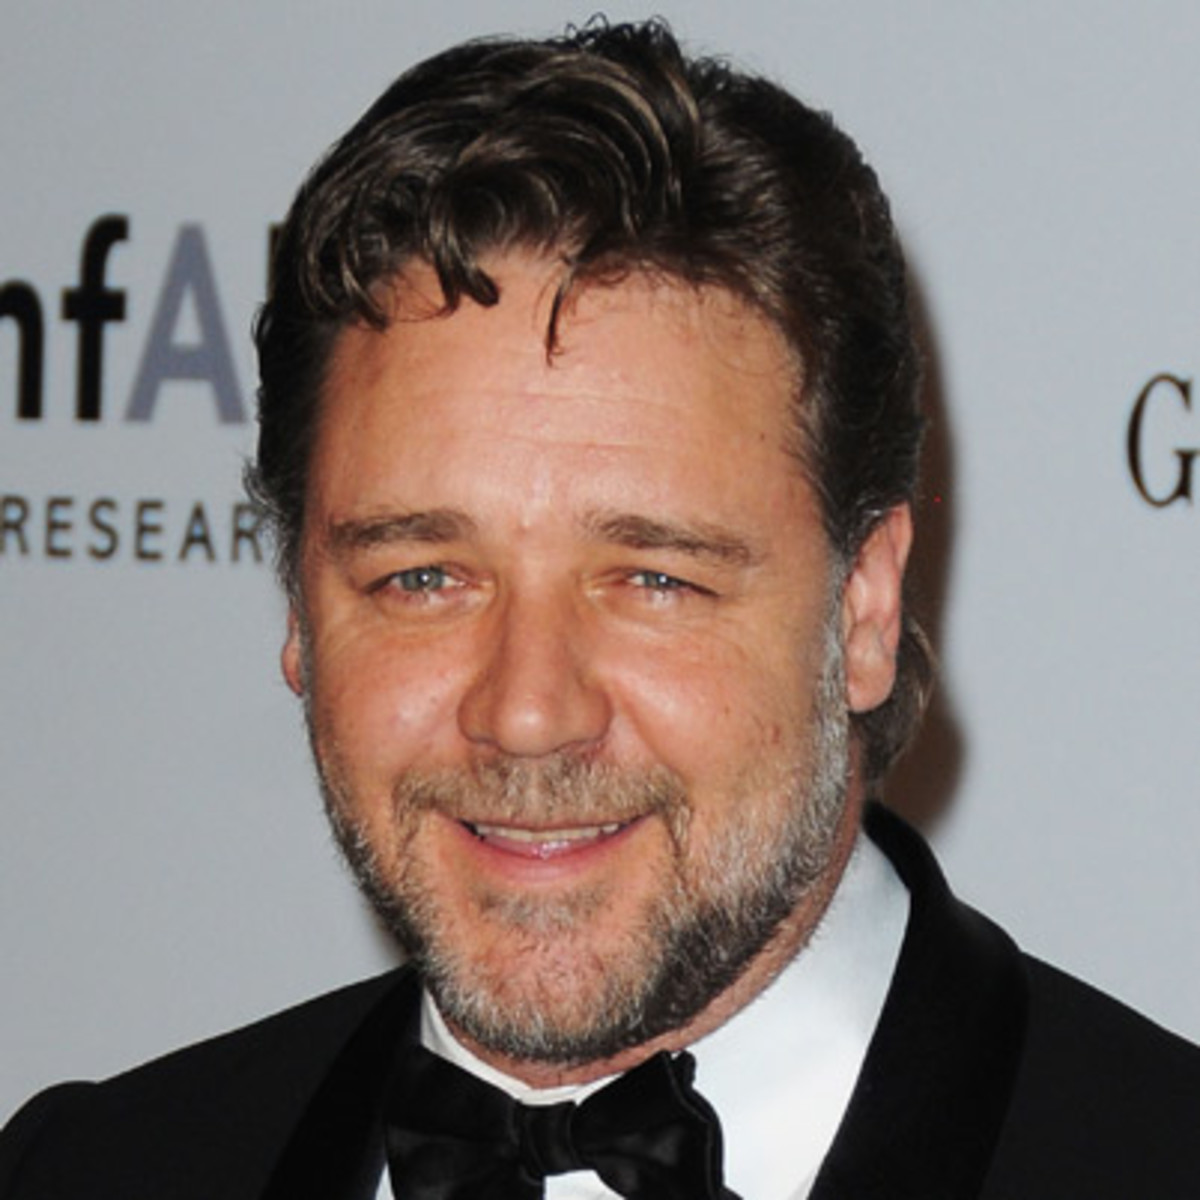 Russell Crowe Wiki, Bio, Age, Girlfriend, Wife, Net Worth